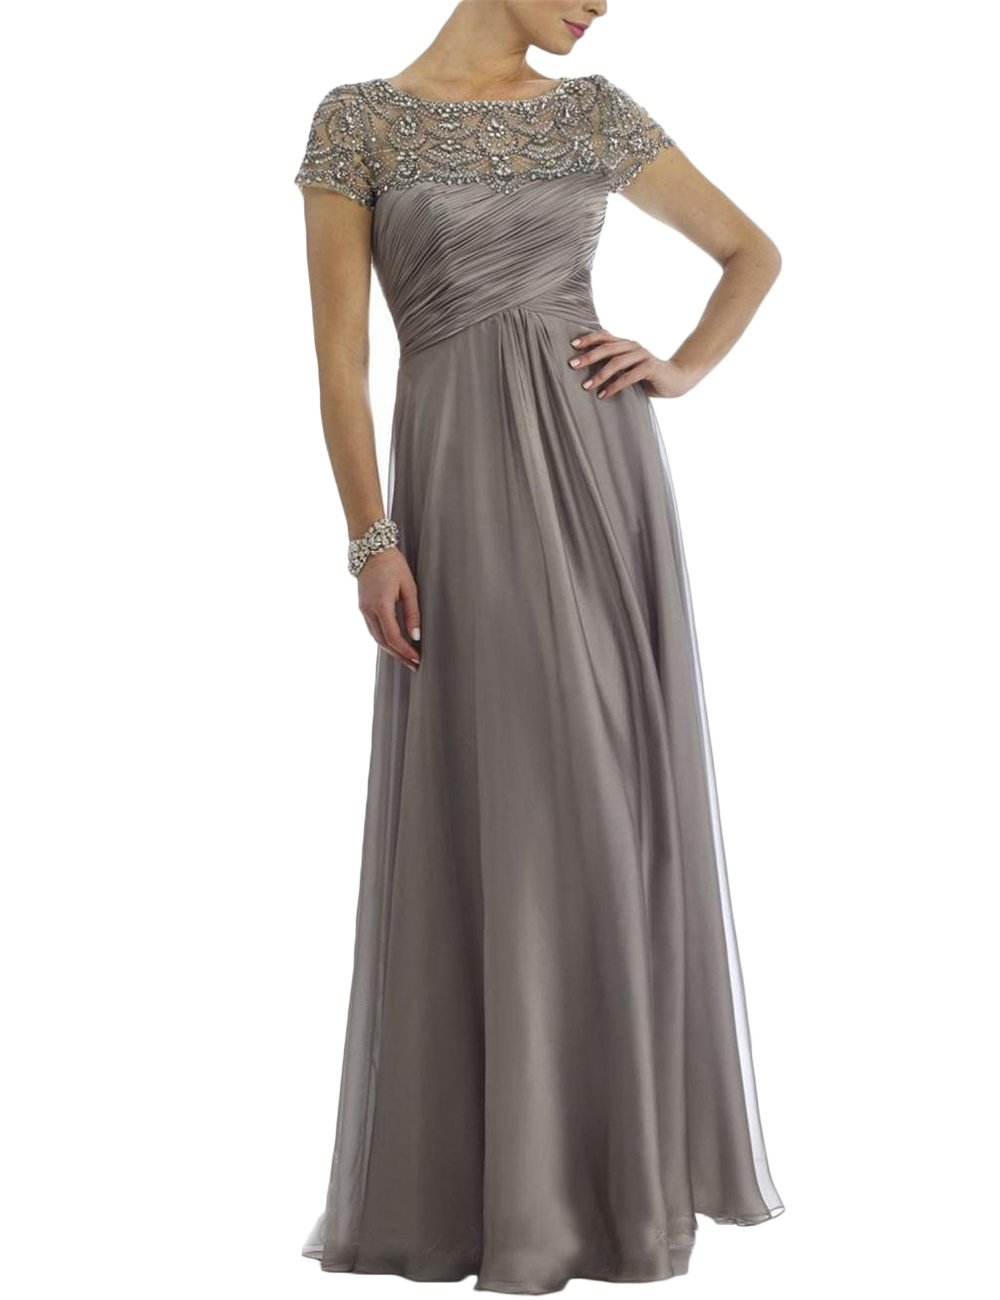 Mother Of The Bride Dresses - Newdeve Chiffon Mother Of The Bride Dresses Long Pleated With Rhinestones Short Sleeve